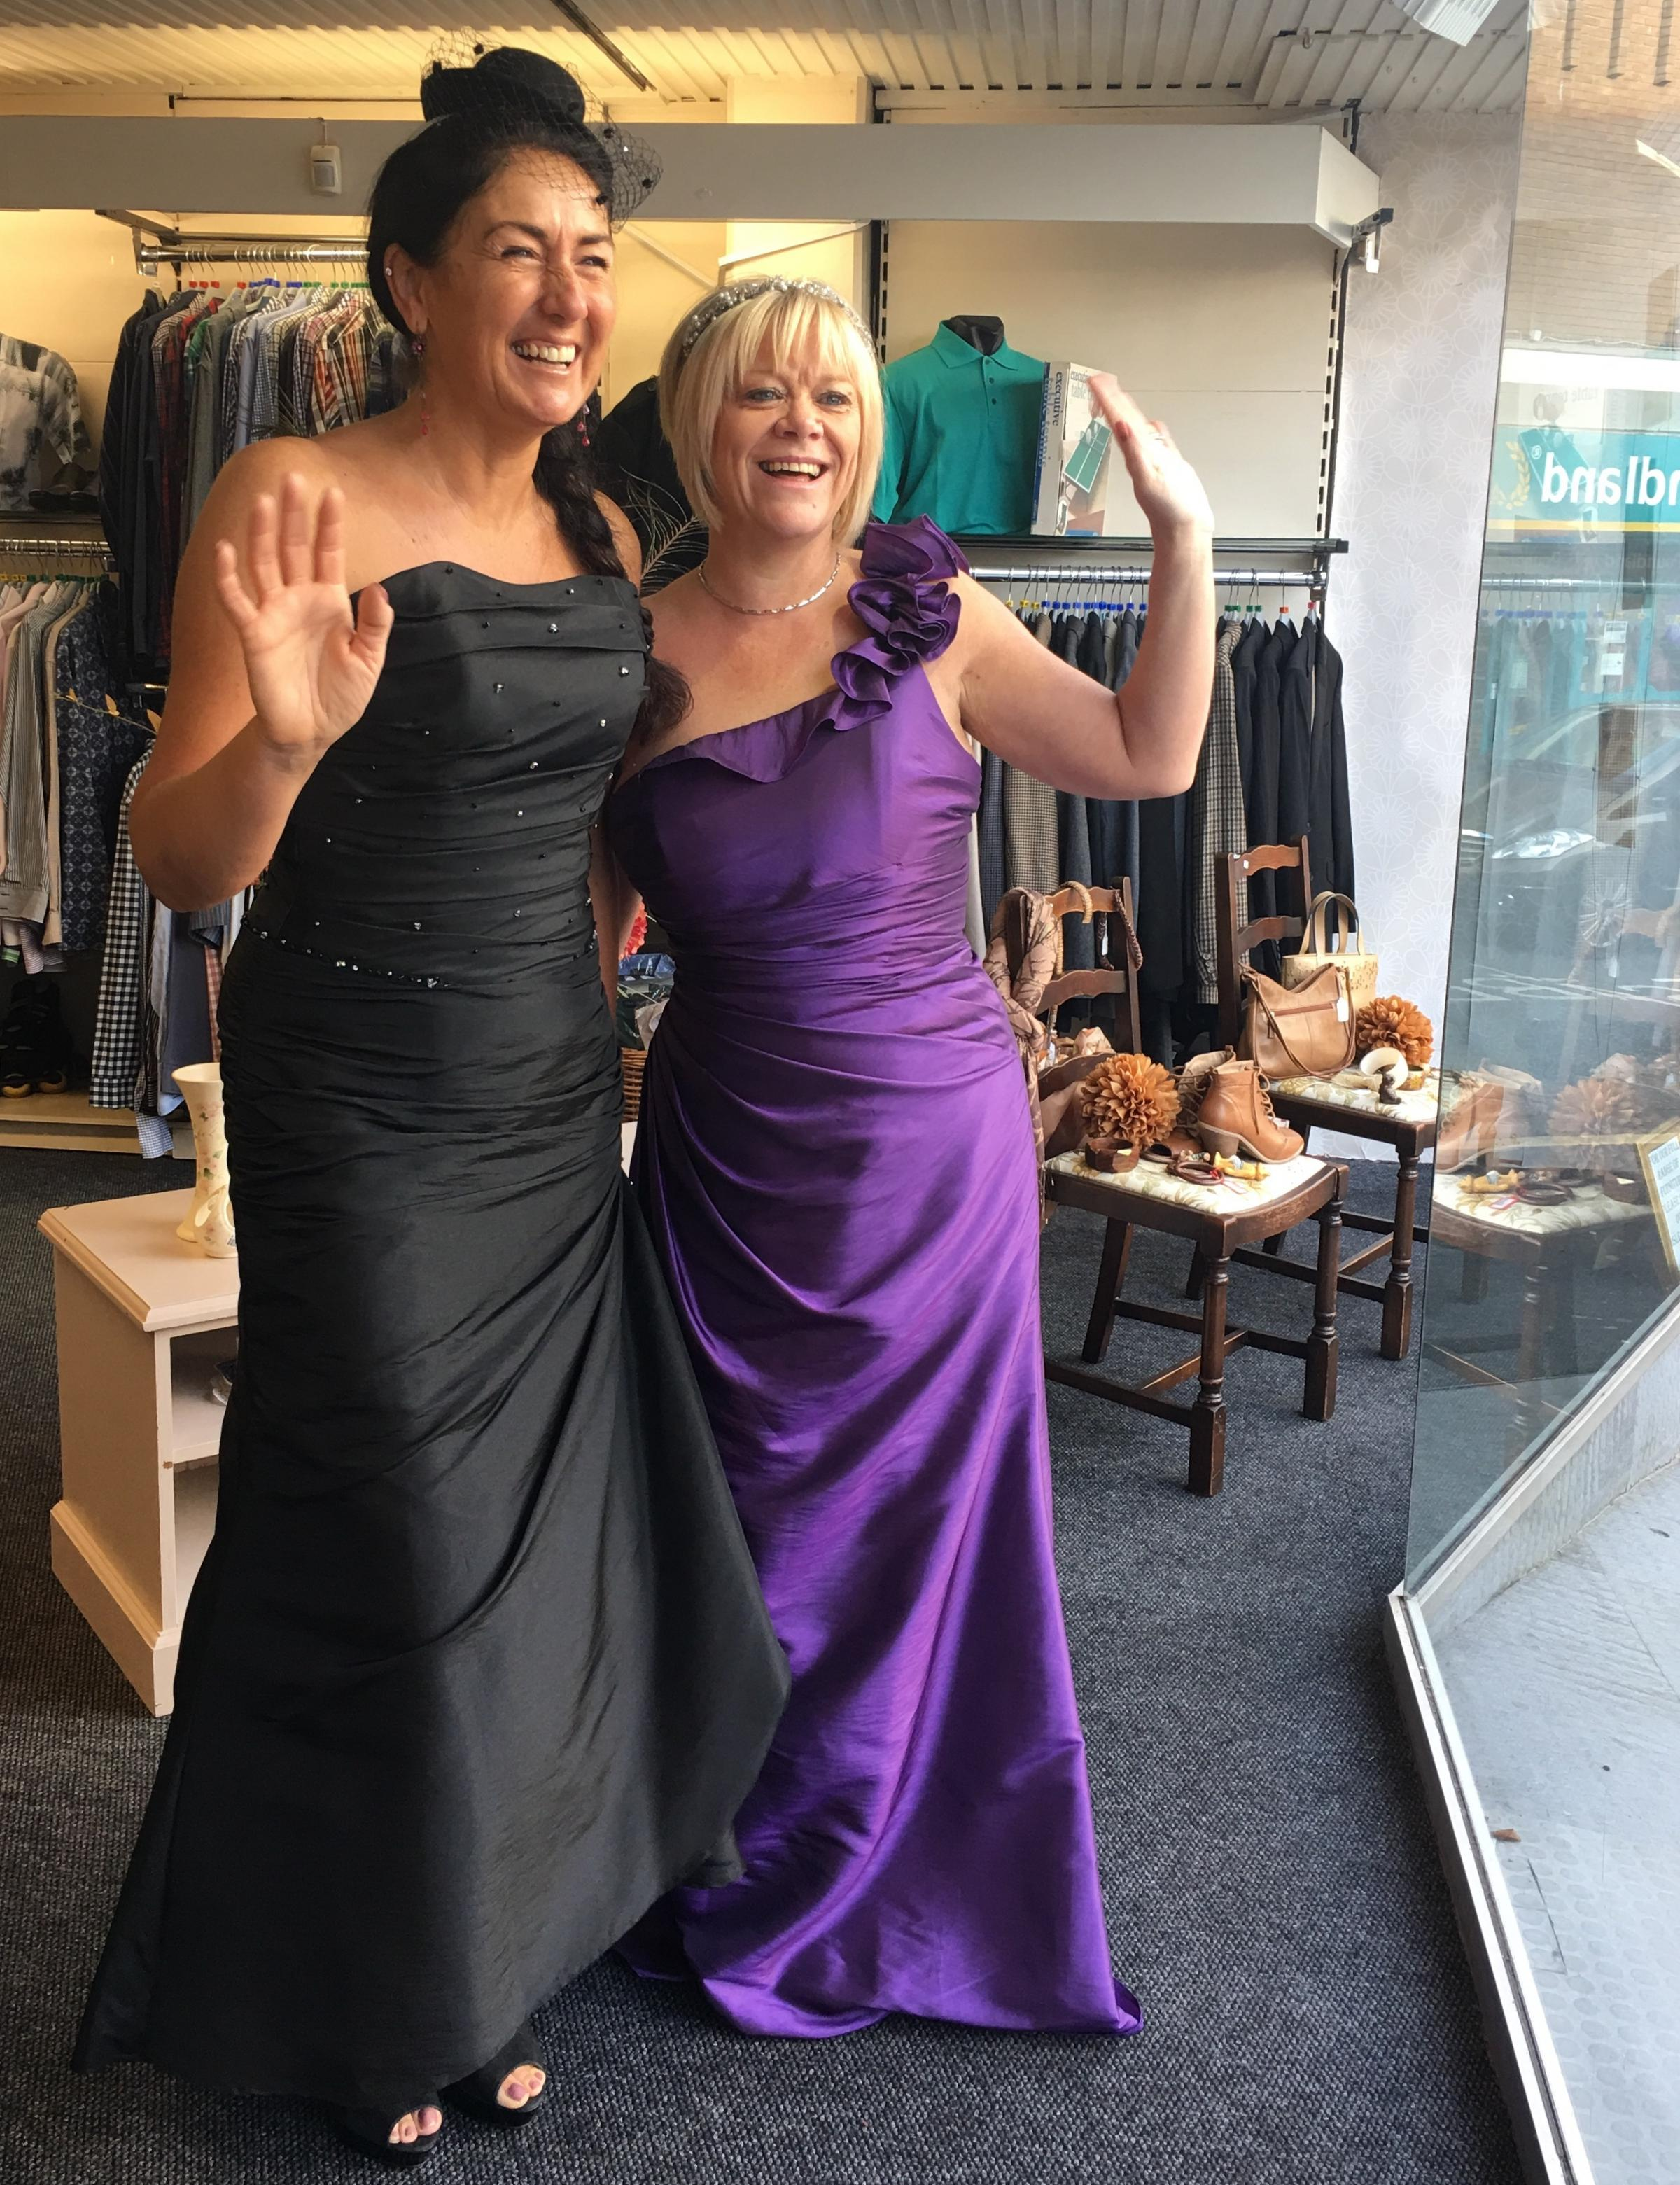 Catwalk preparations for annual Kemp Hospice fashion show ...